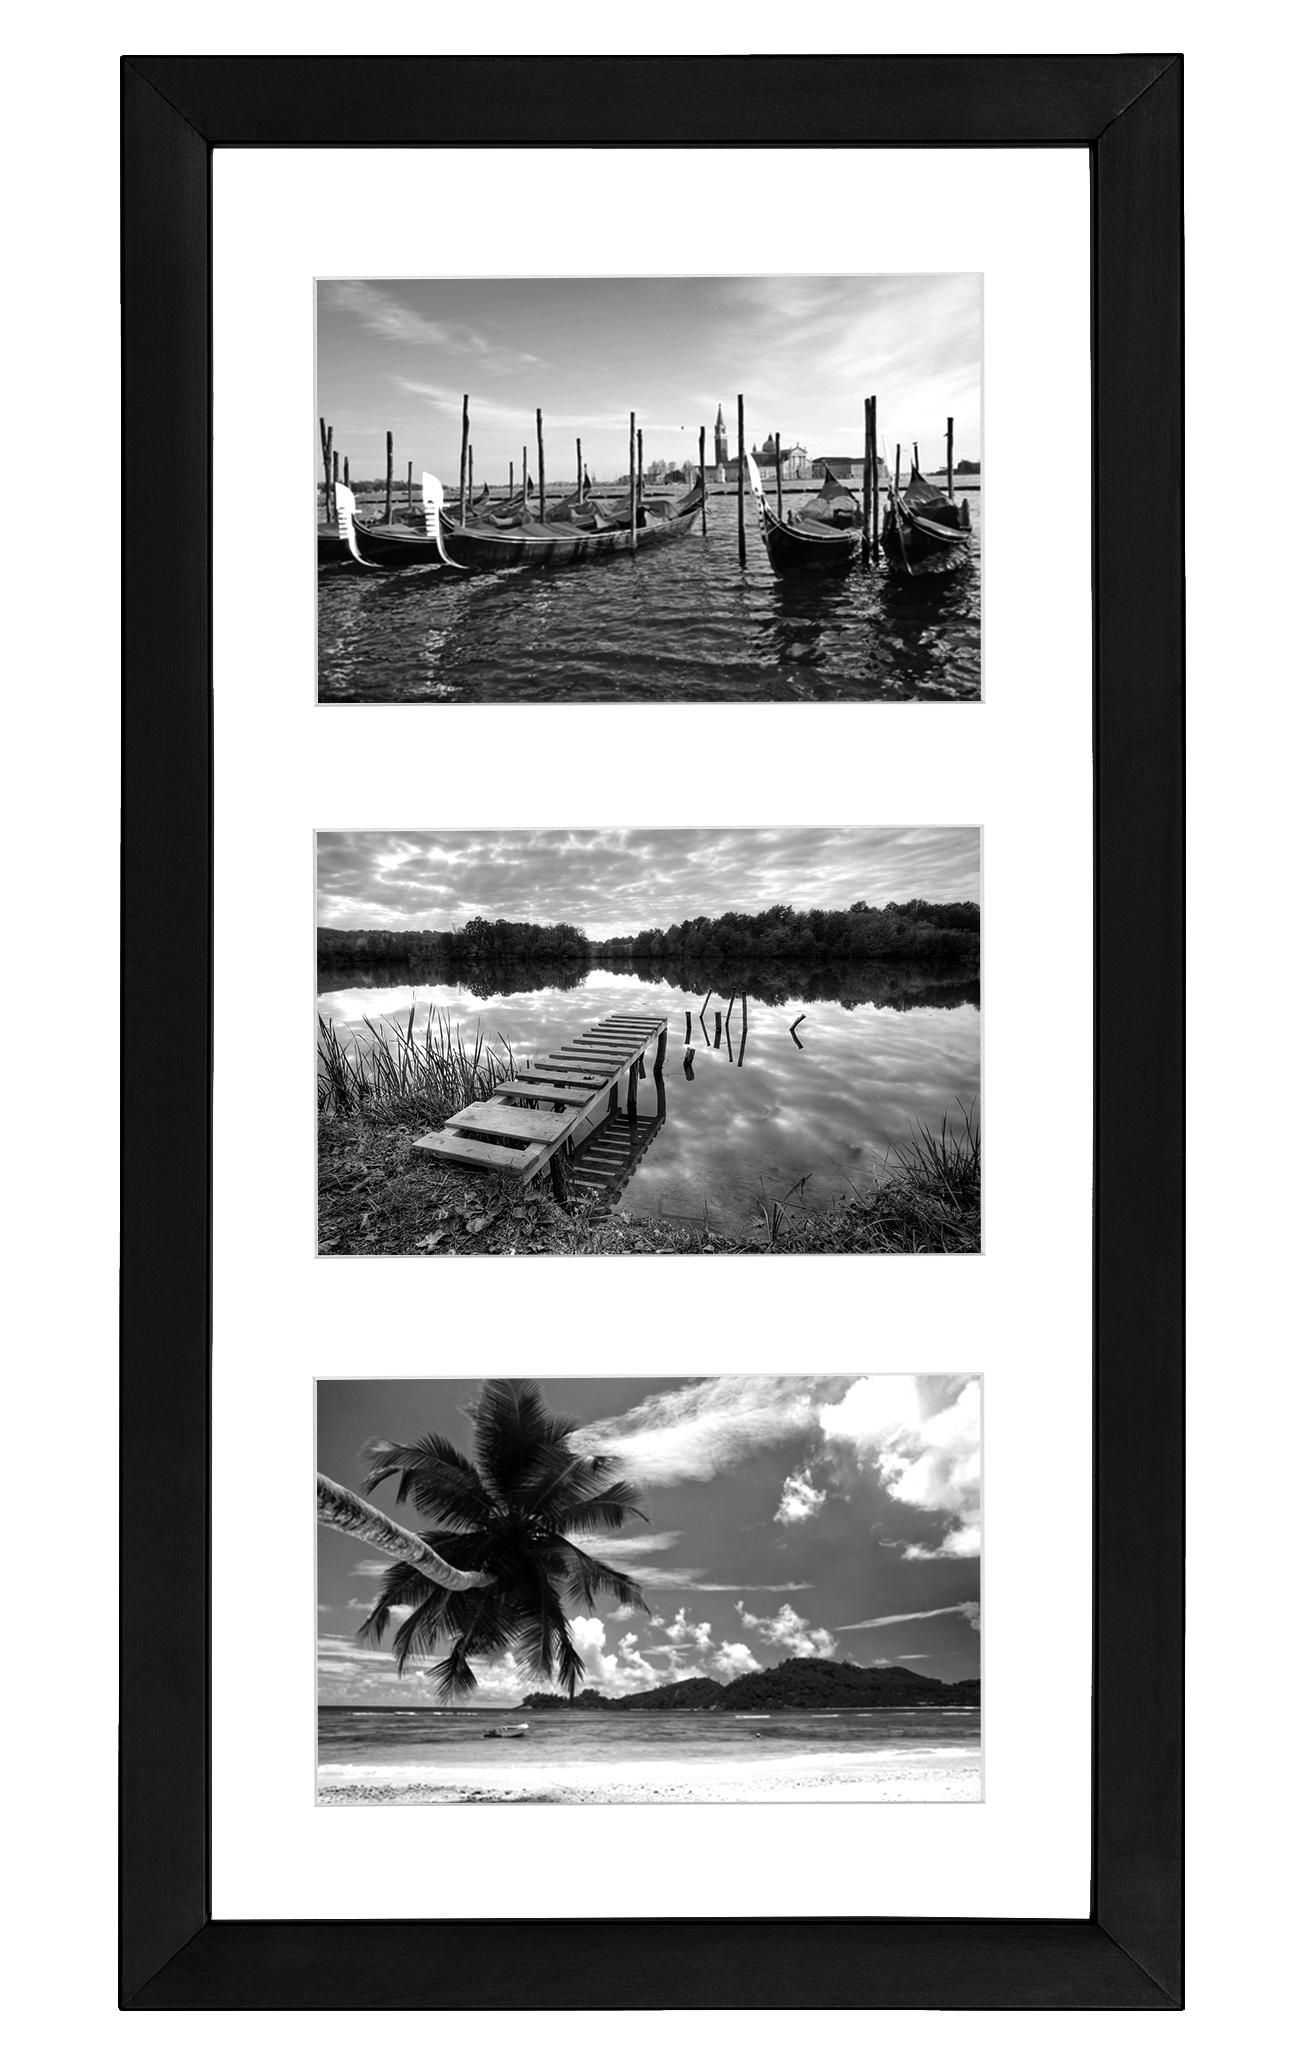 Amazon Com Collage Picture Frame 4x6 Displays Three 4x6 Inch Portrait Pictures Photo Collage Frame Perfect Fo Picture Frame Display Collage Picture Frames